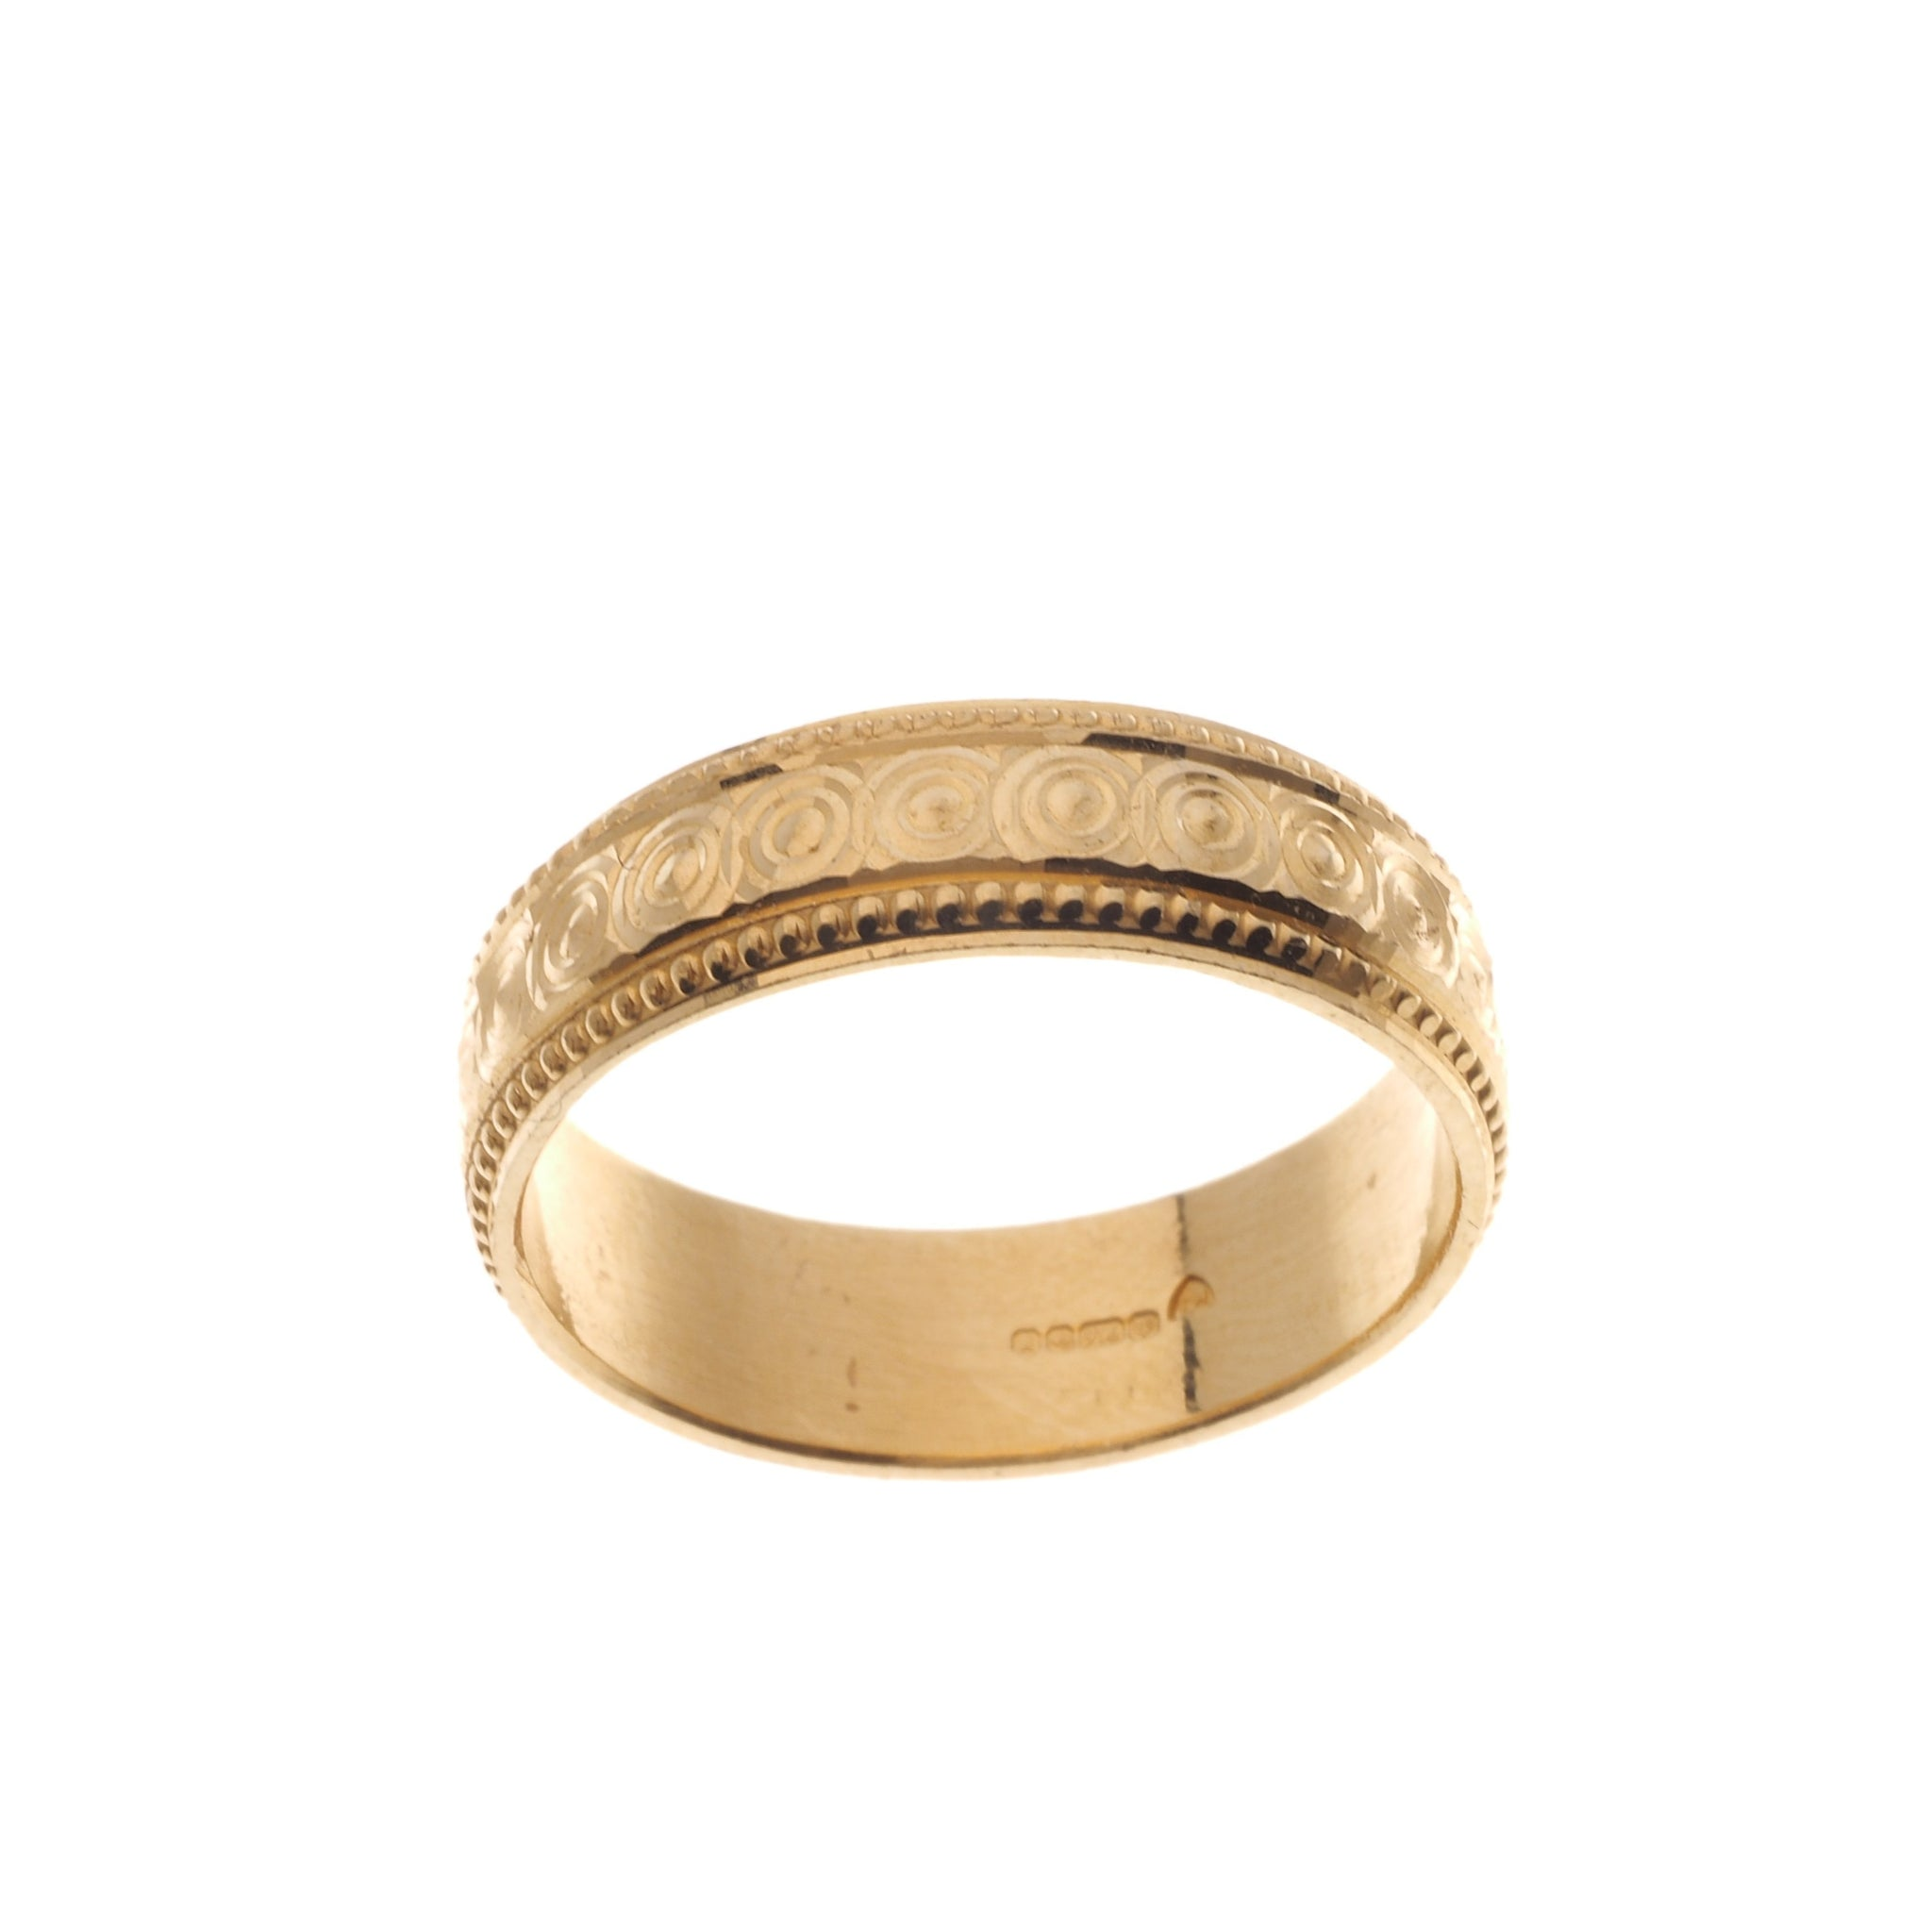 22ct Gold Gents Wedding Band (7.4g) GR-4759